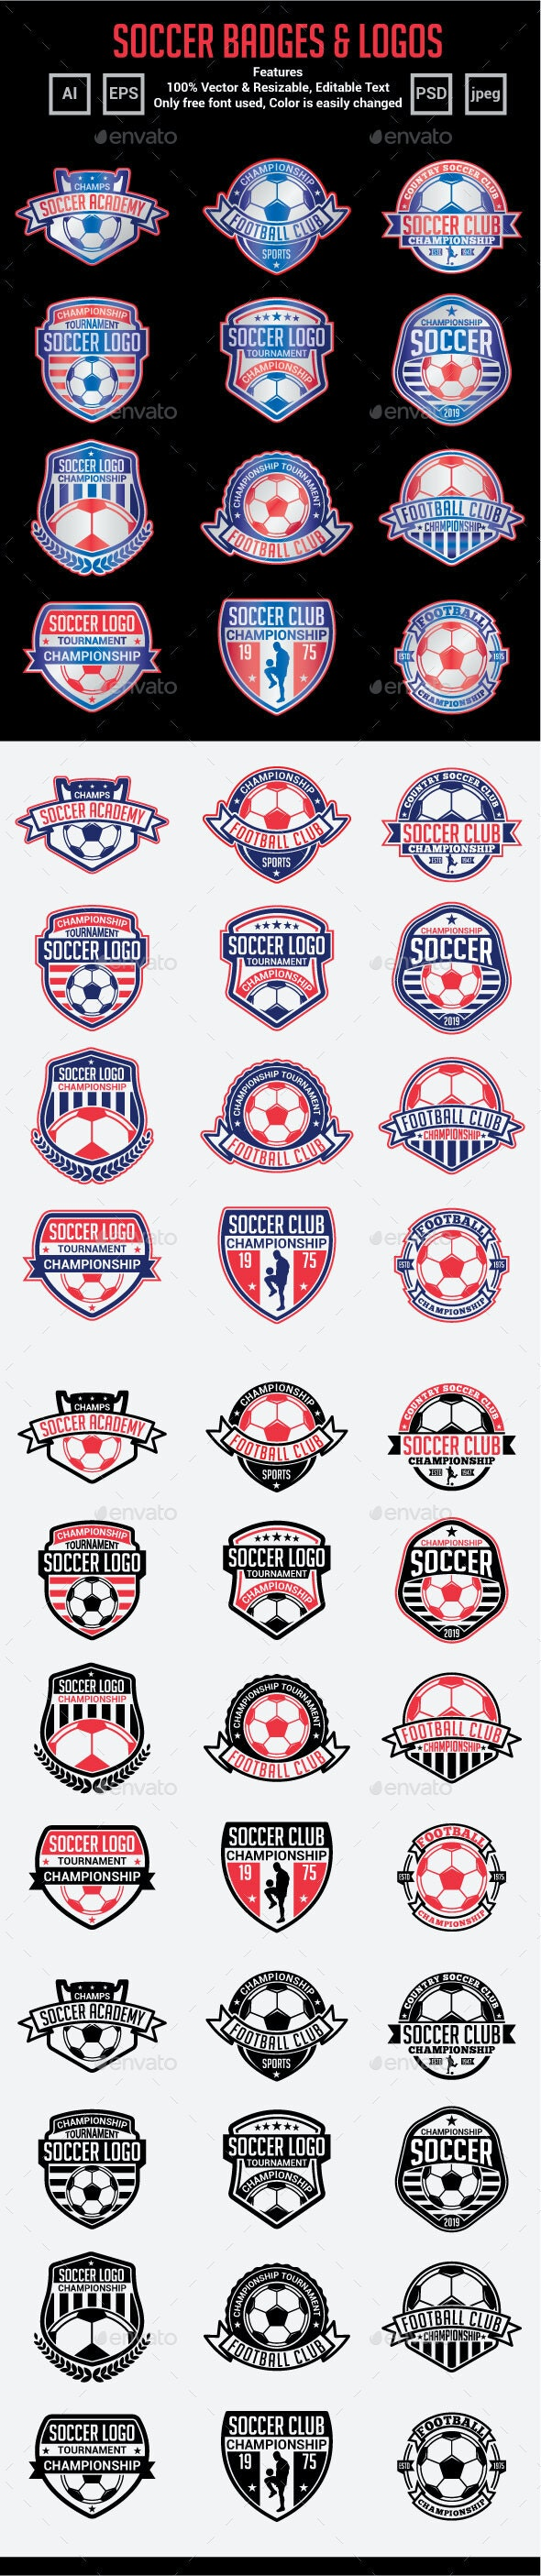 Soccer Badges & Logos - Badges & Stickers Web Elements